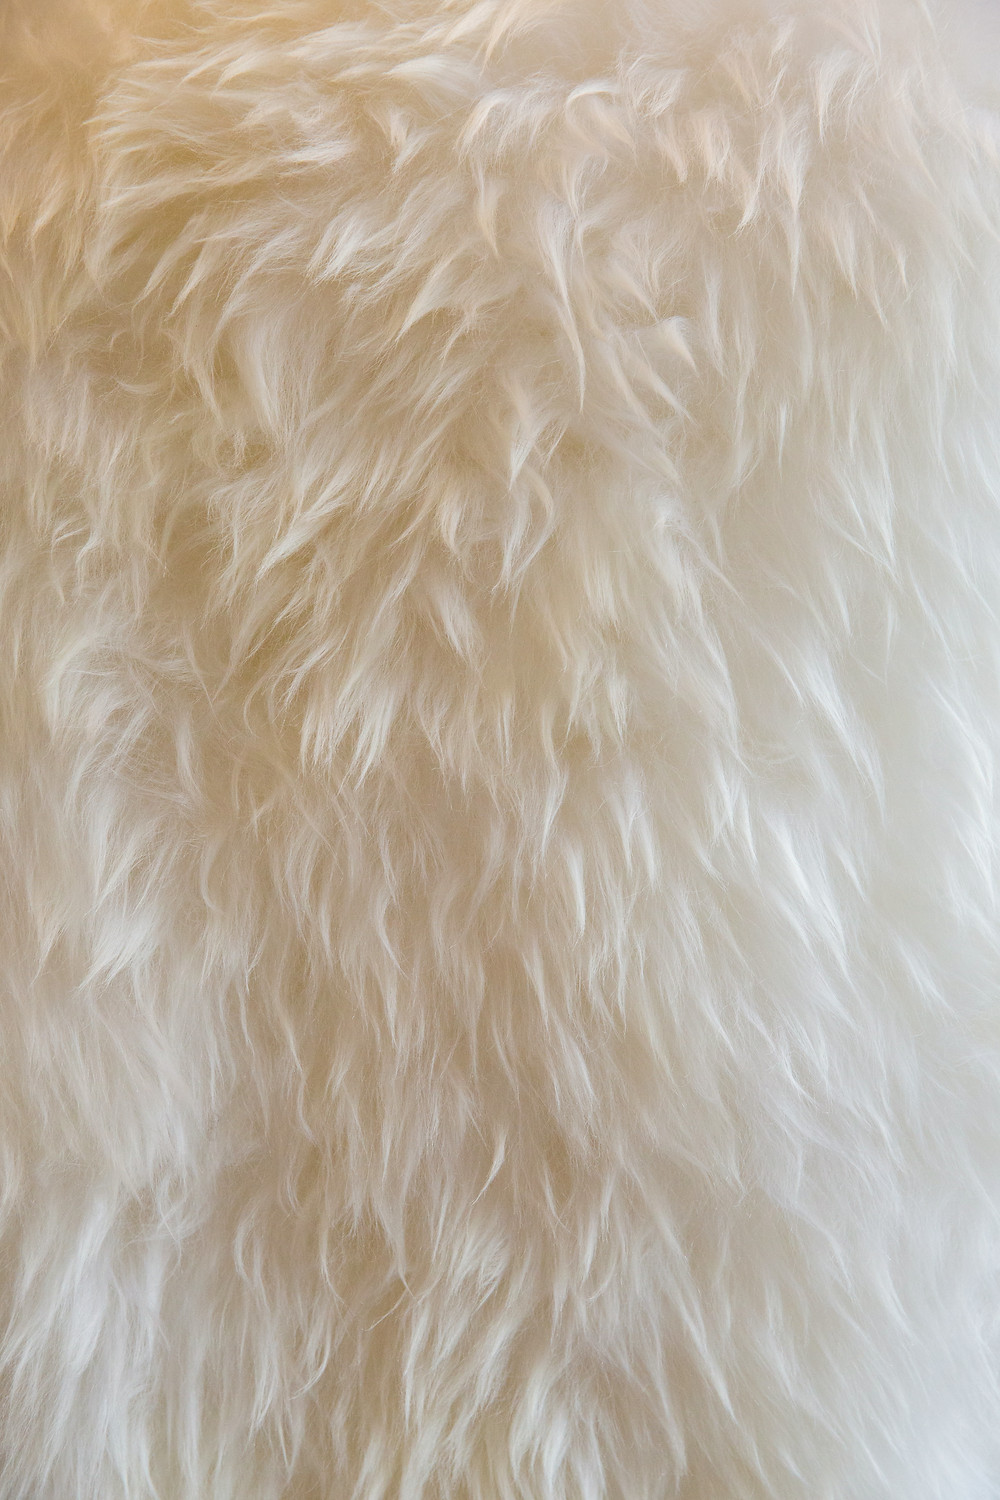 Sheepskin Rug Close Up